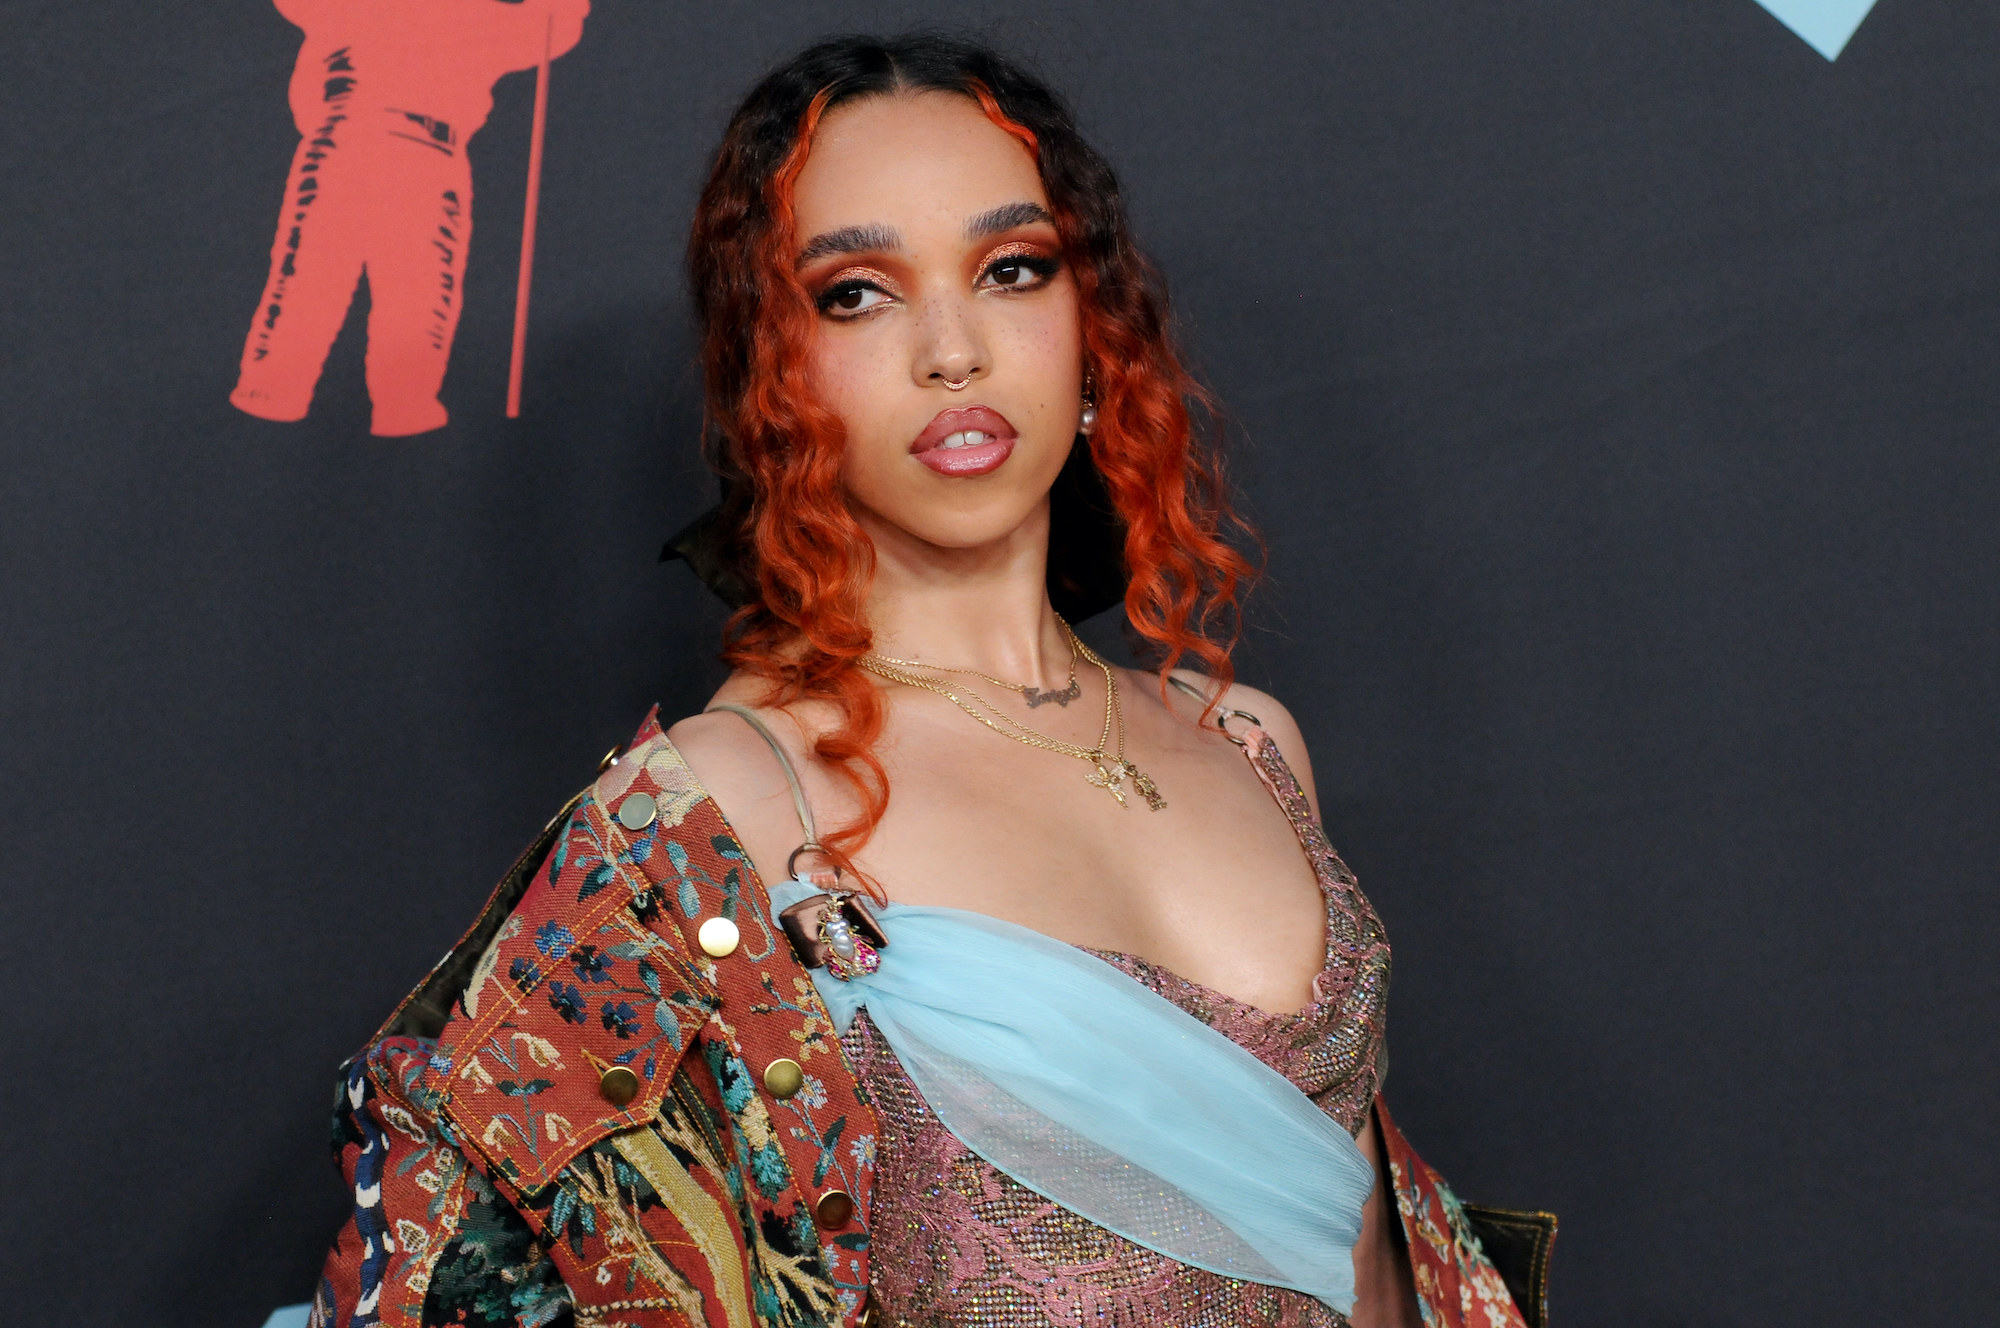 FKA Twigs poses on the 2019 MTV Video Music Video Awards